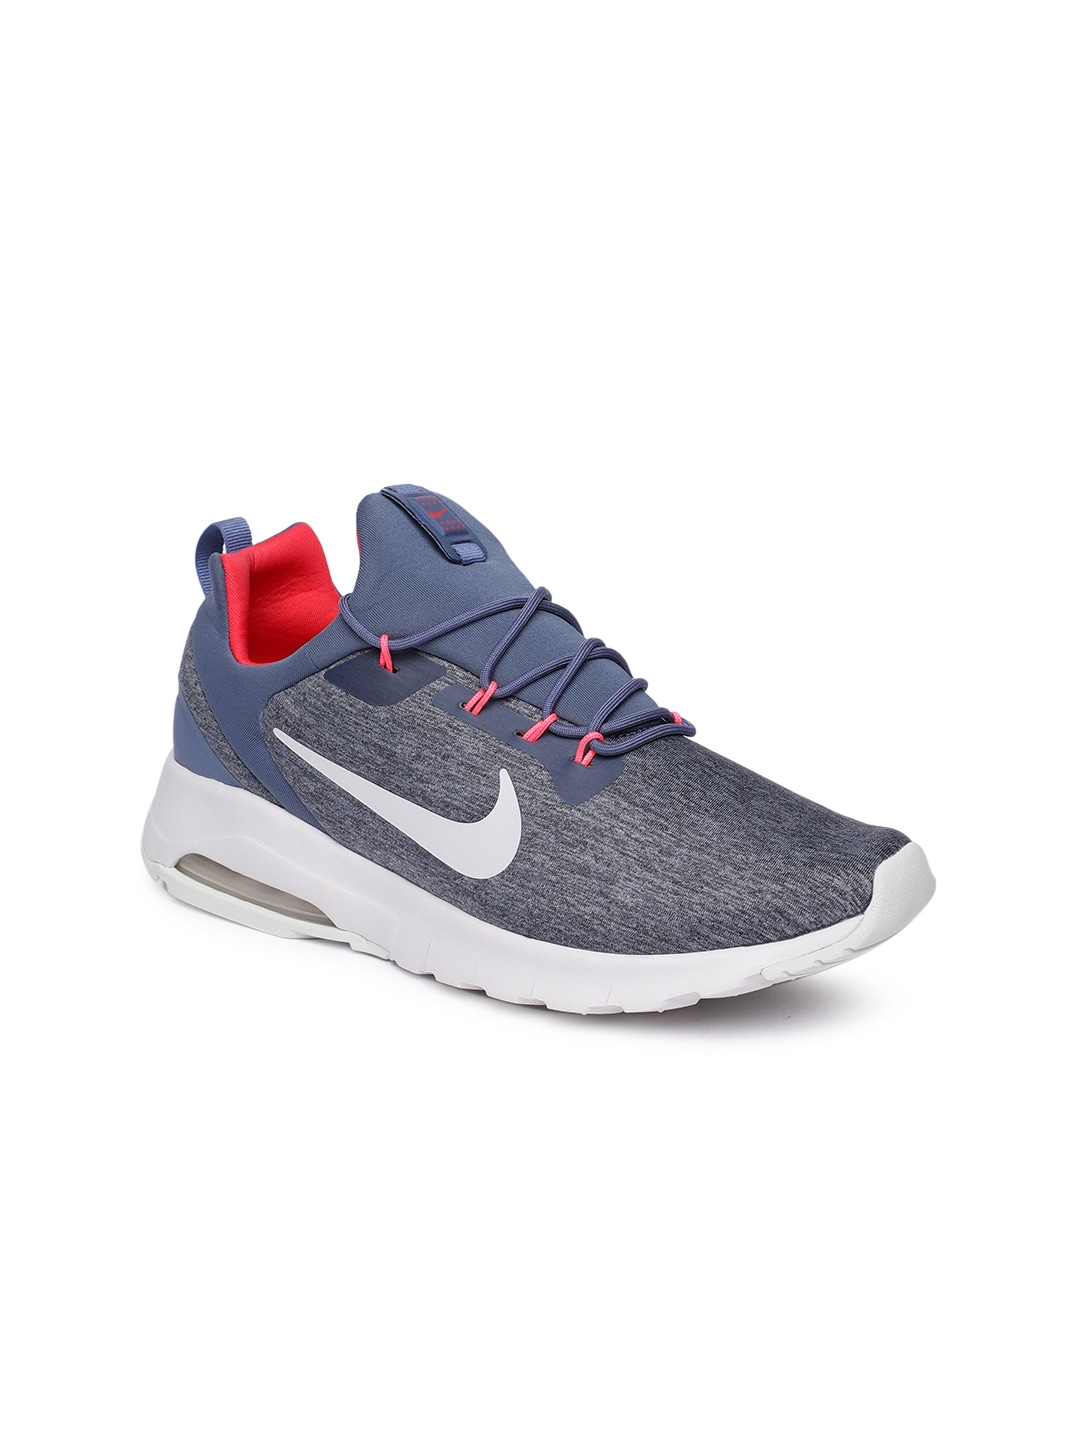 02791cbc3ac5c Nike Air Max Shoes - Buy Nike Air Max Shoes Online for Men   Women